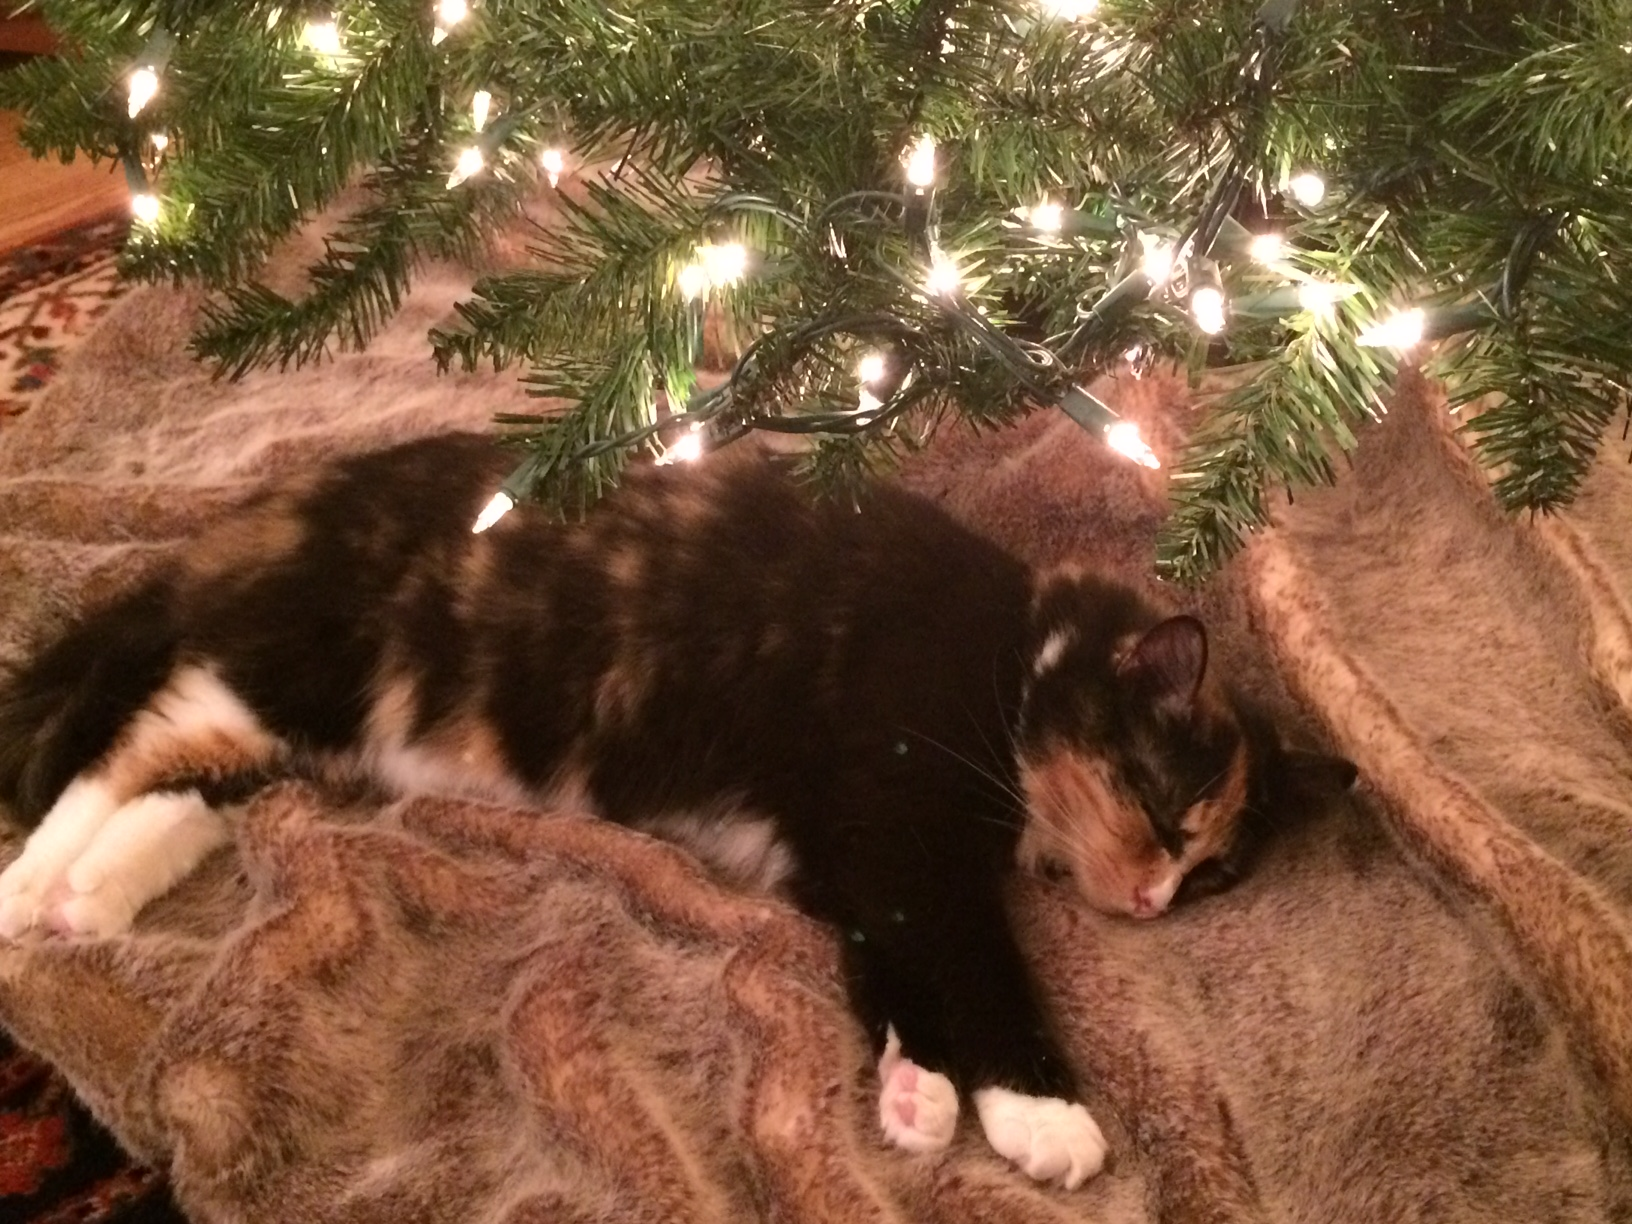 Olive under the tree